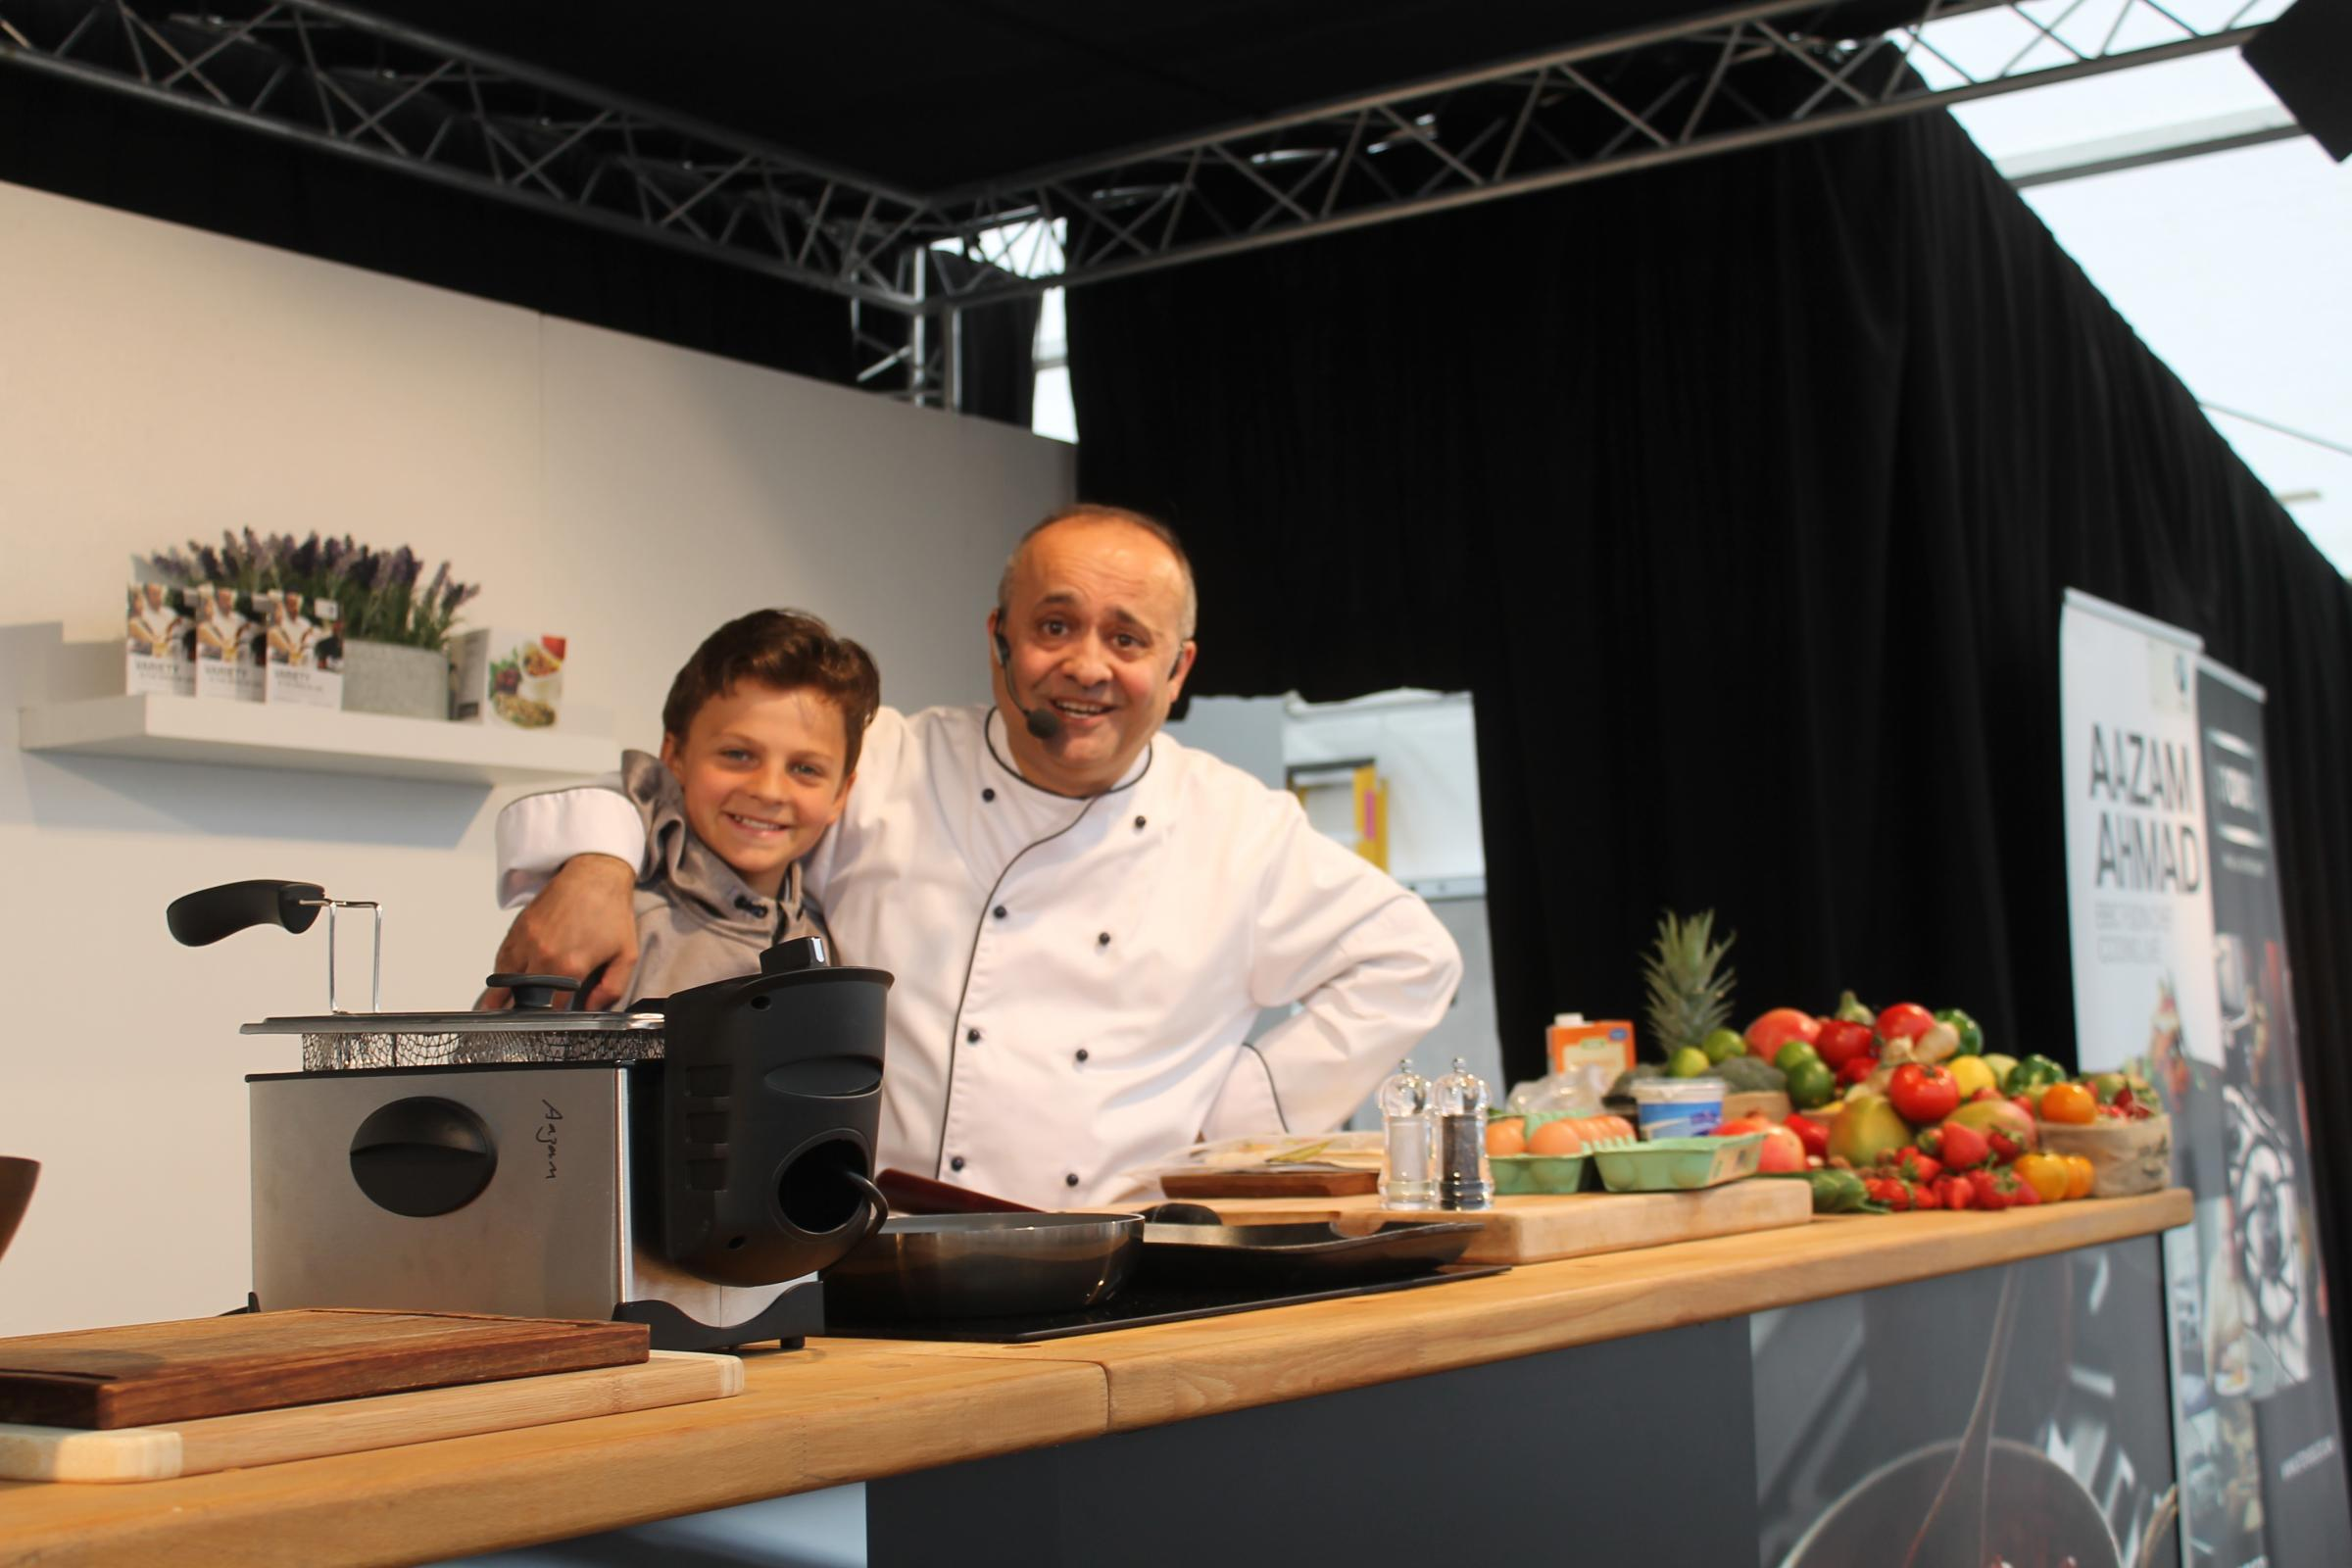 FESTIVAL: A demonstration to schoolchildren by BBC Fusion Chef Aazam Ahmad Picture: PETER BARRON